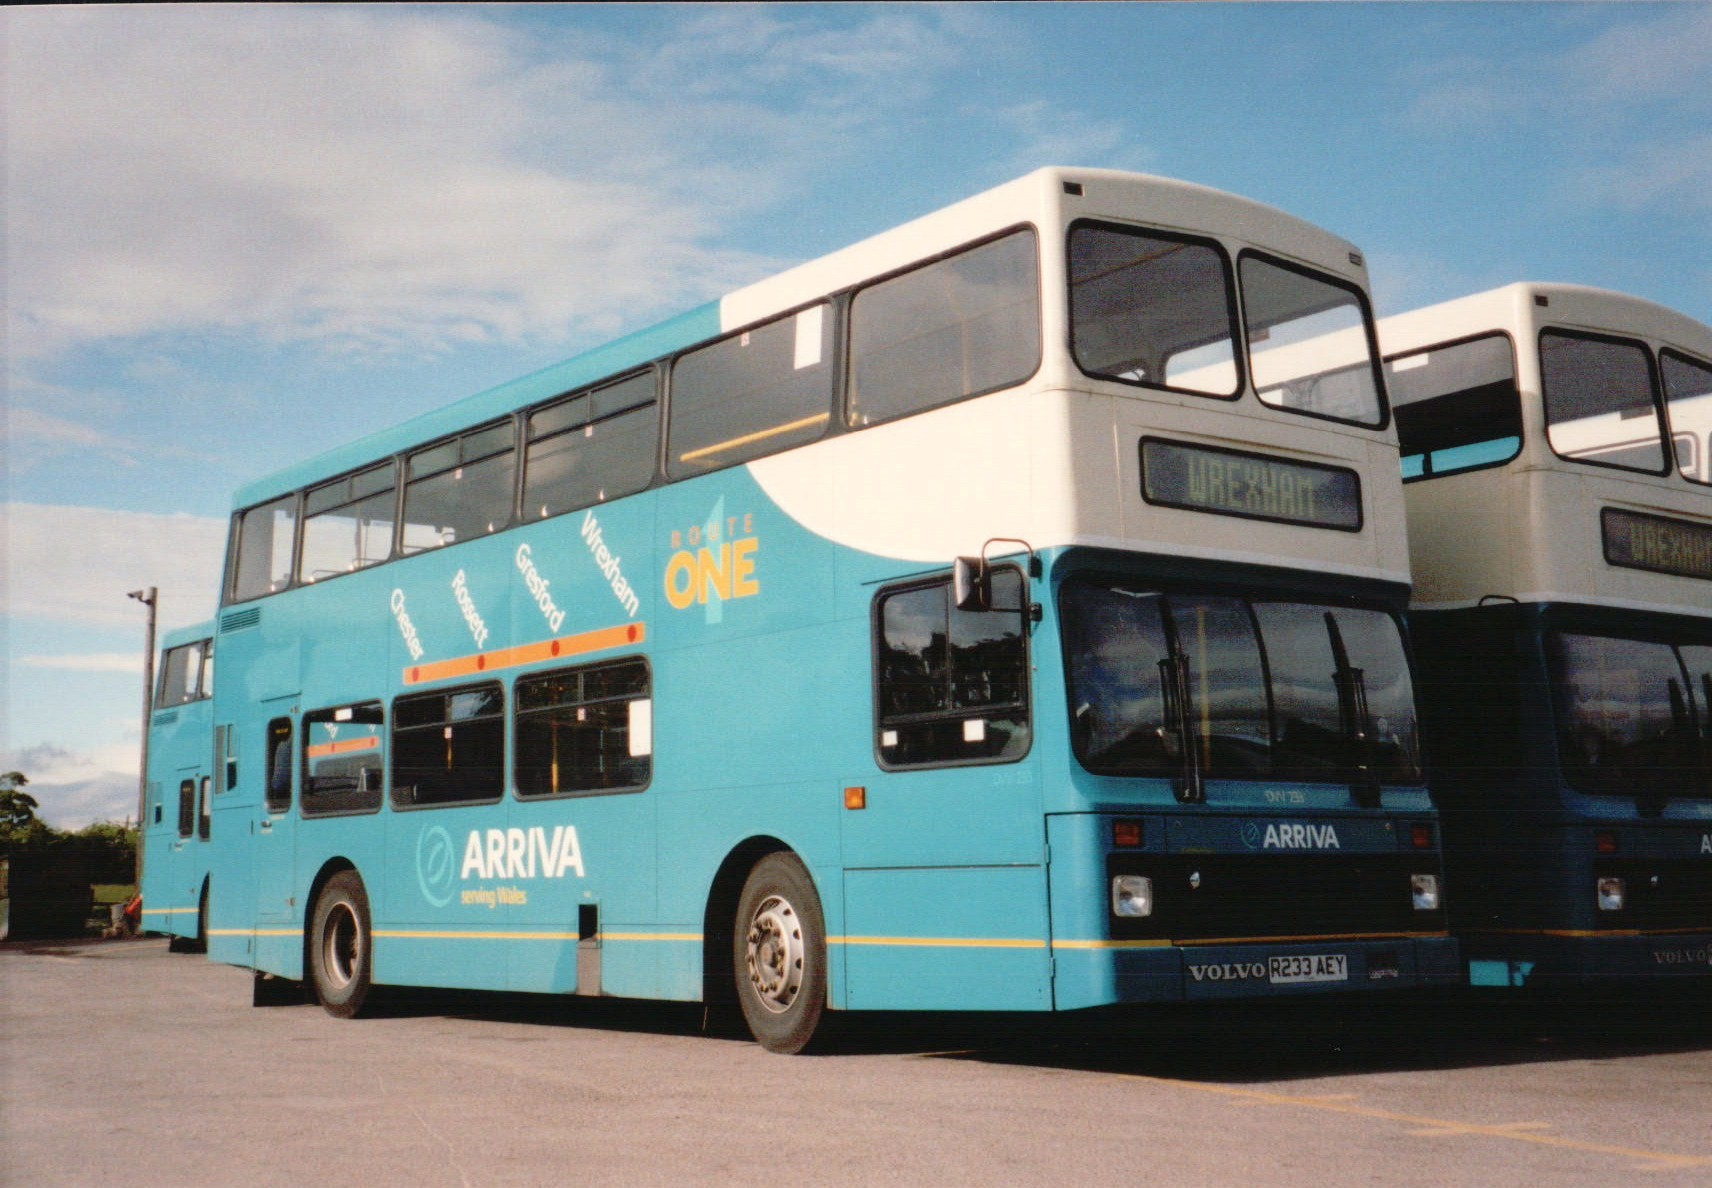 Bus Transport In Wales